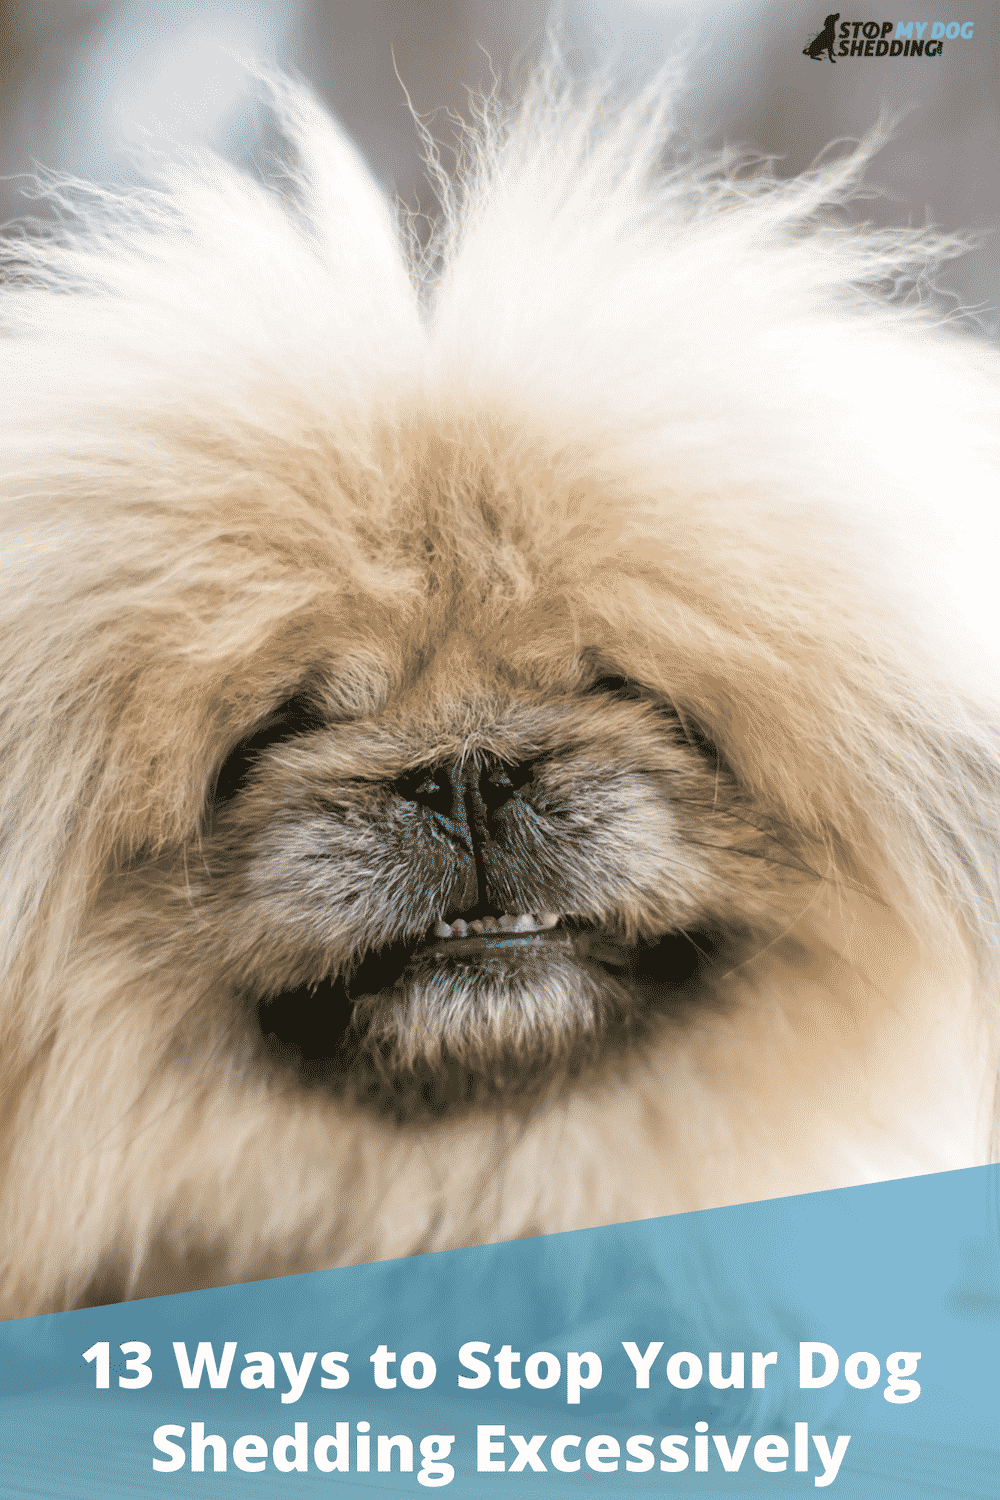 13 Ways To Stop Your Dog Shedding Excessively